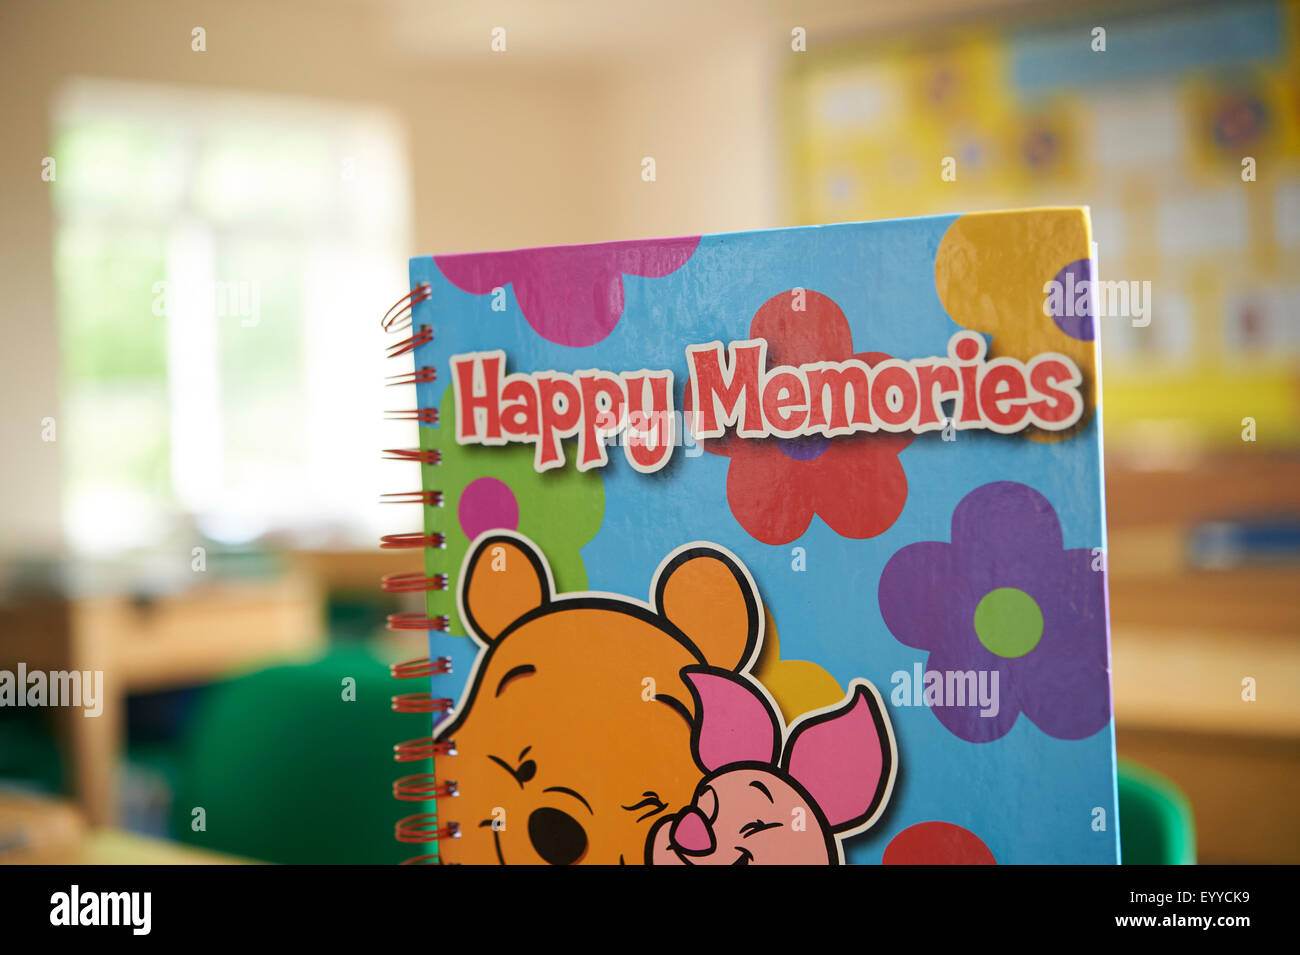 Storybook in classroom Photo Stock